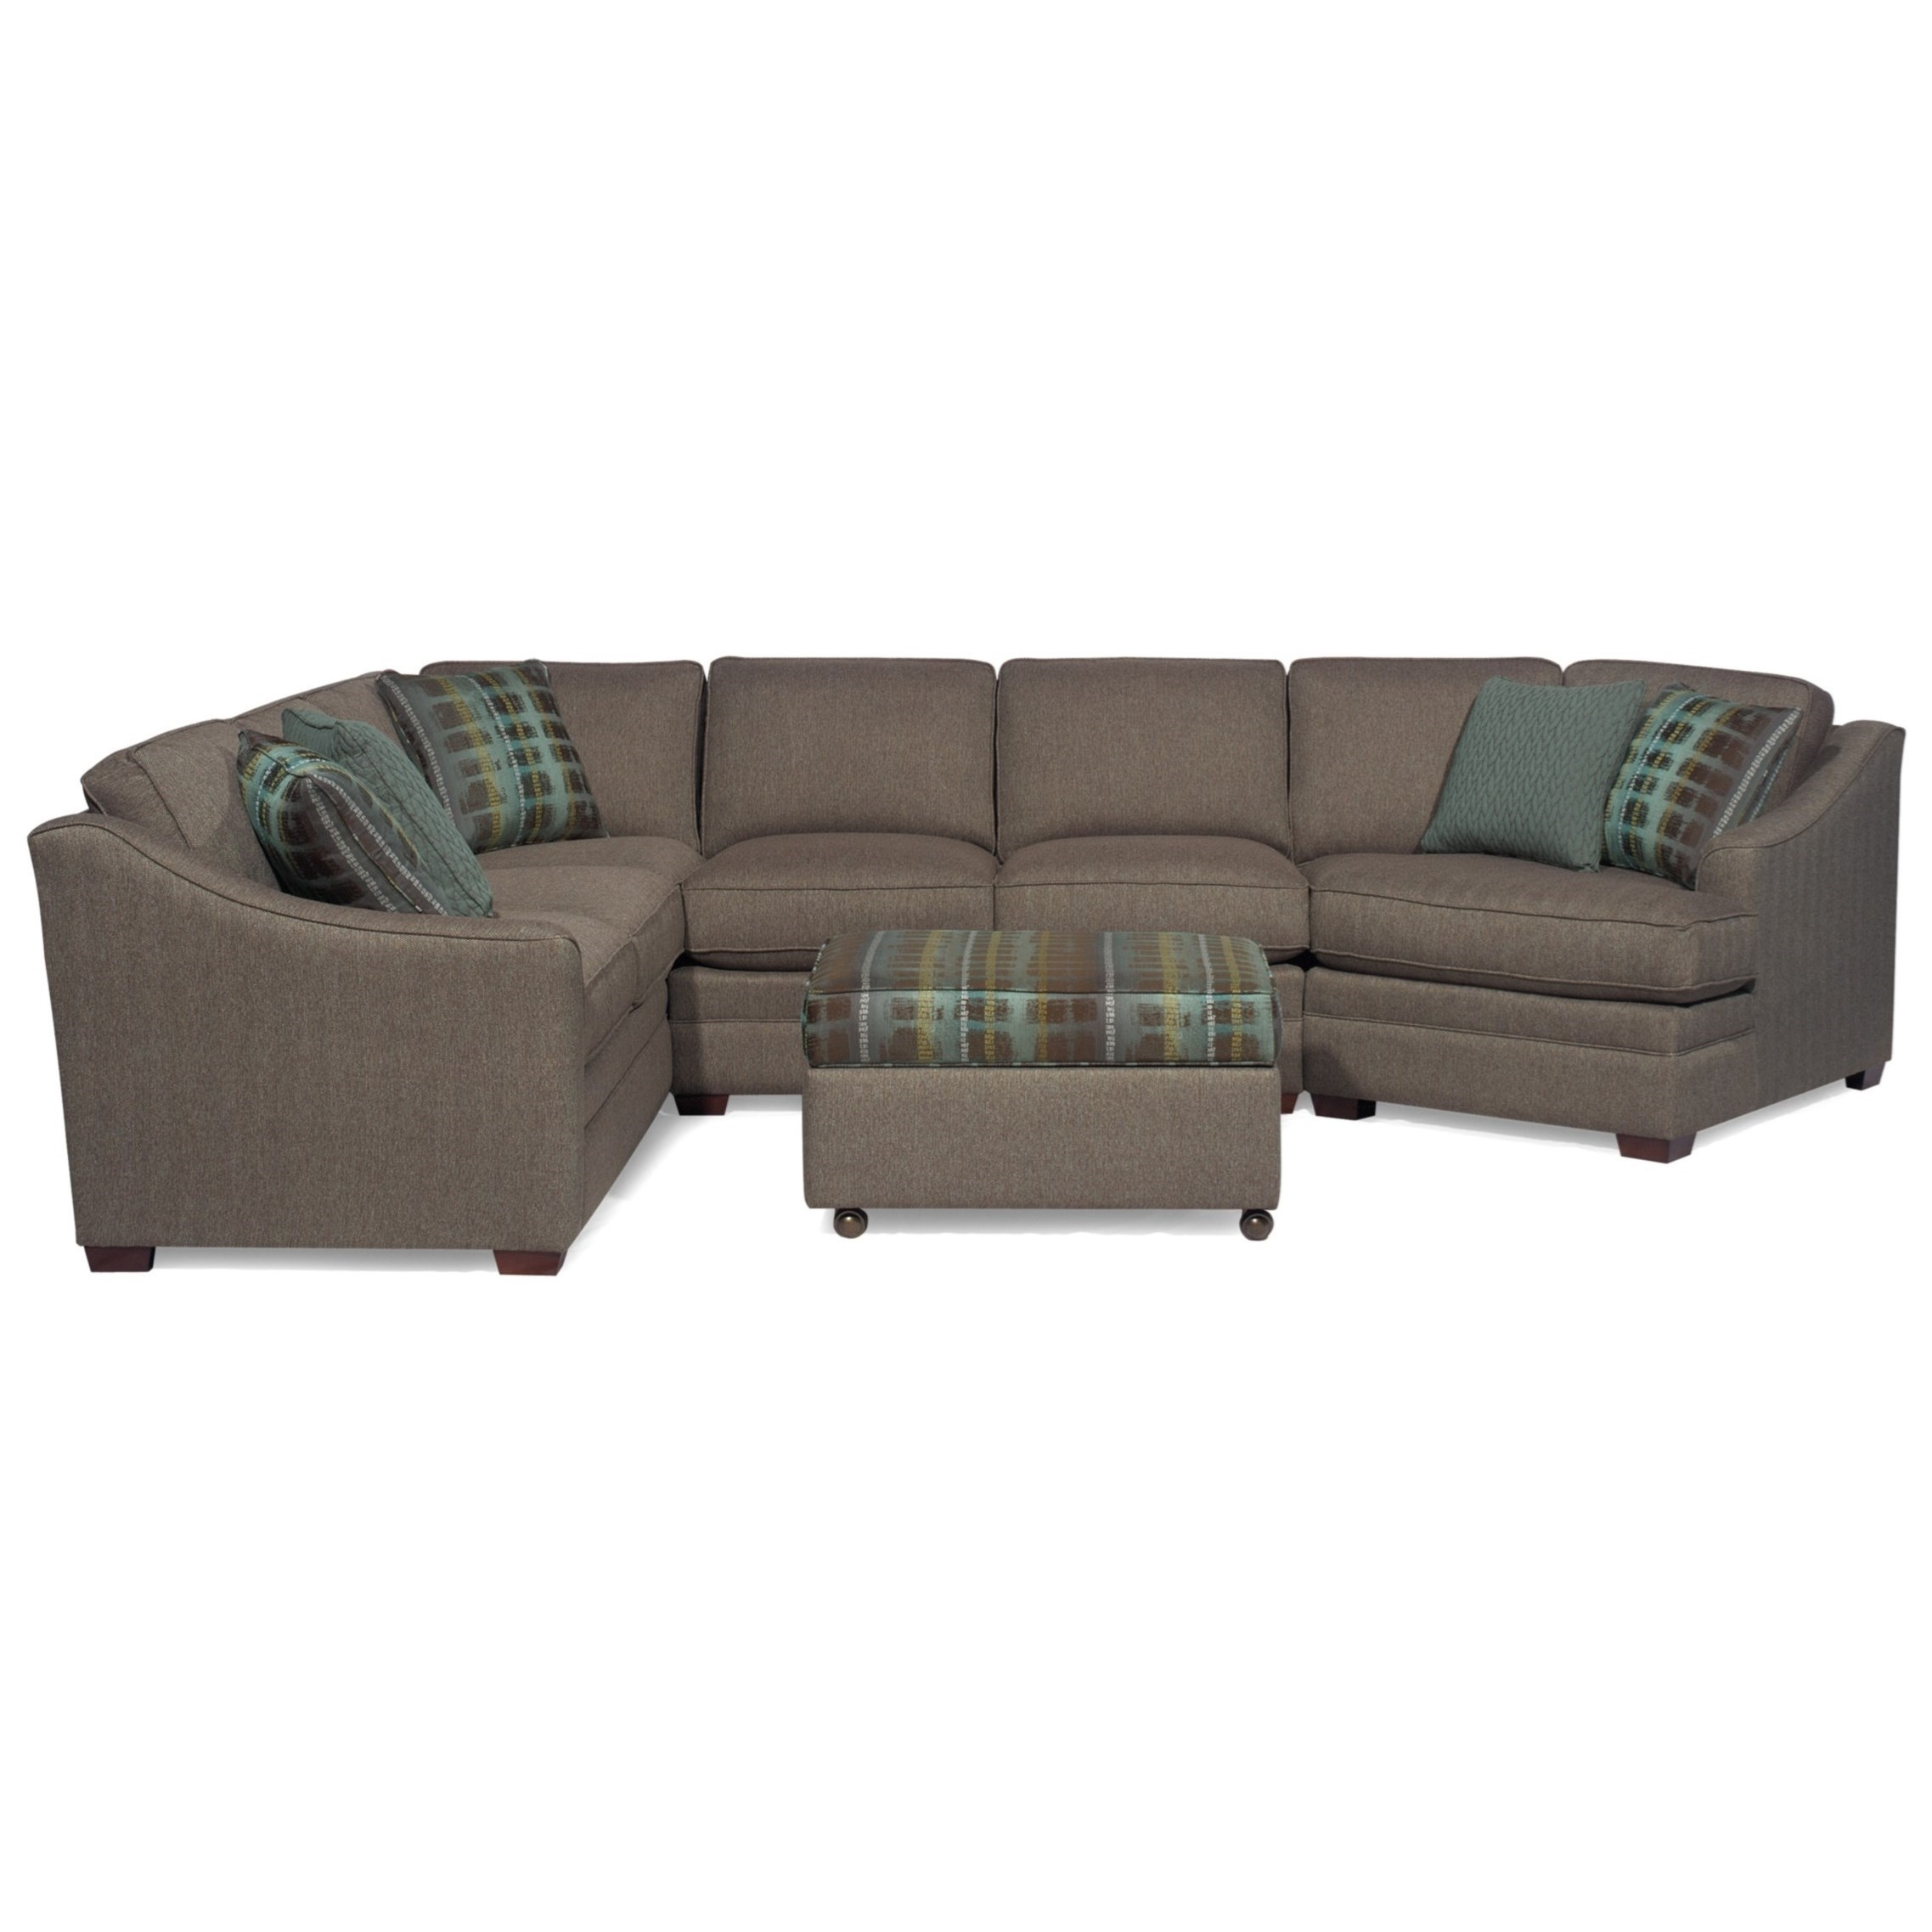 Craftmaster F9 Custom Collection <B>Customizable</b> 3-Piece pertaining to Avery 2 Piece Sectionals With Raf Armless Chaise (Image 11 of 30)